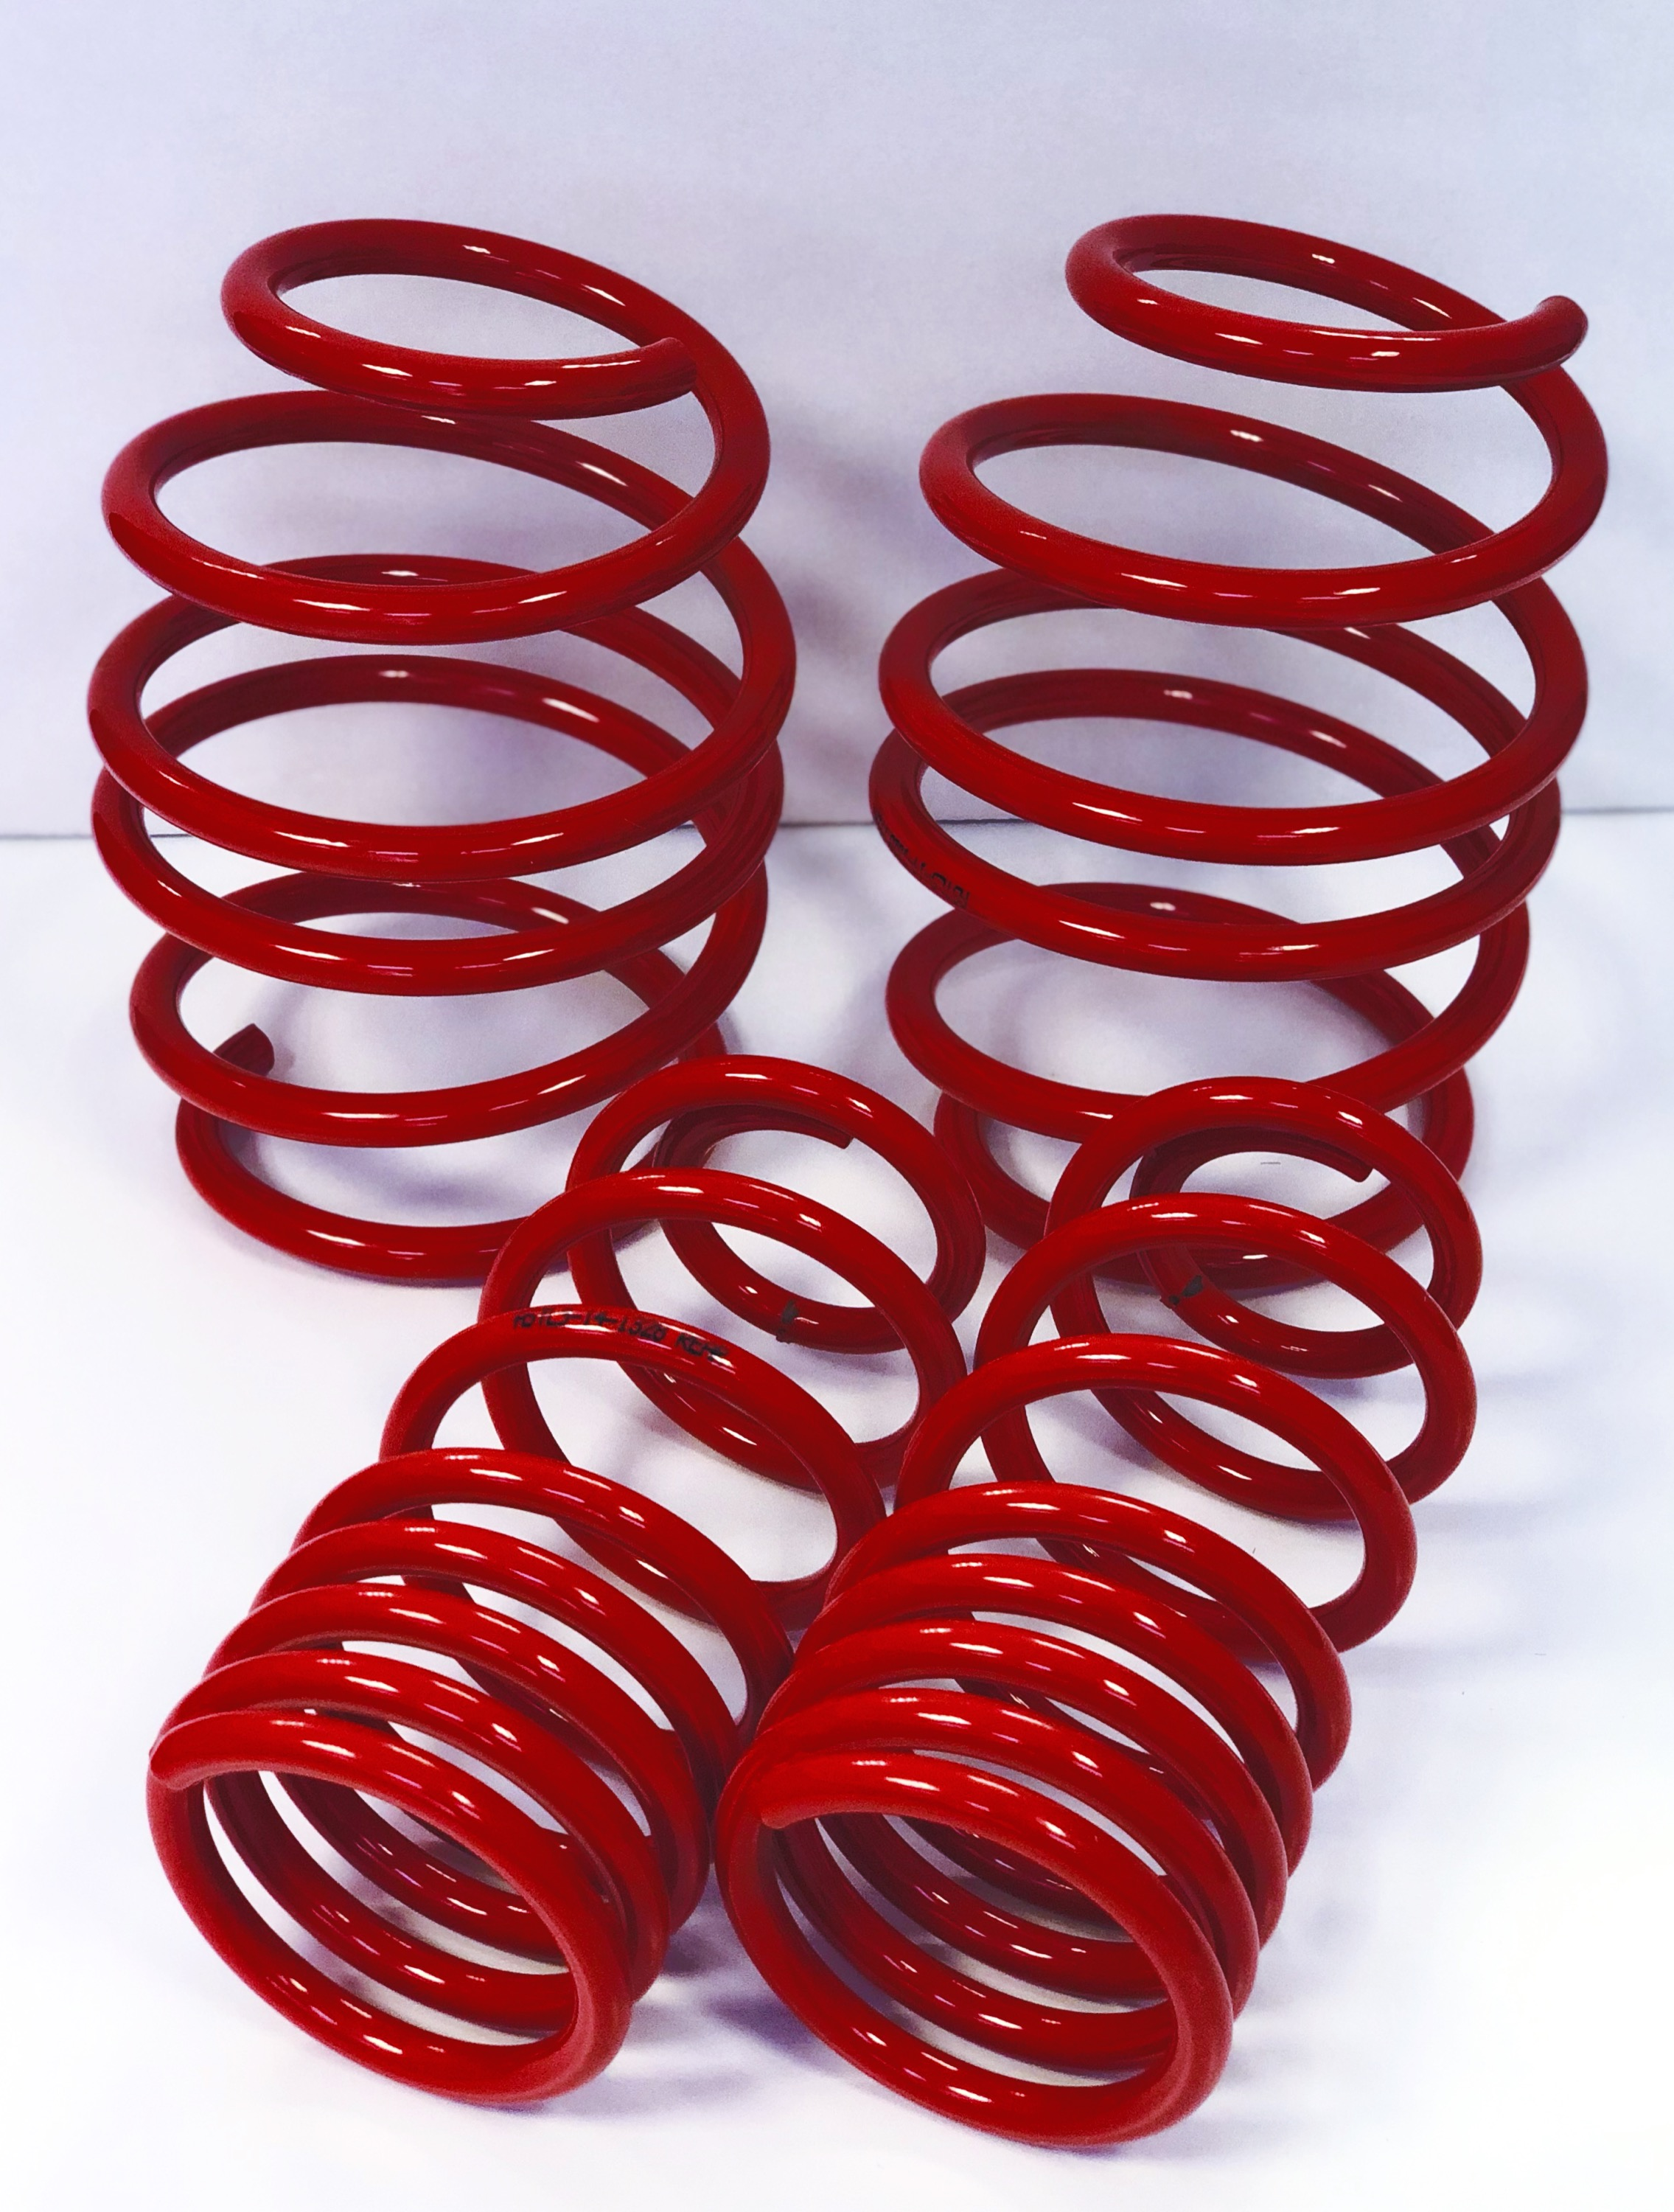 Seat LEON AST Suspension Lowering Springs 30MM